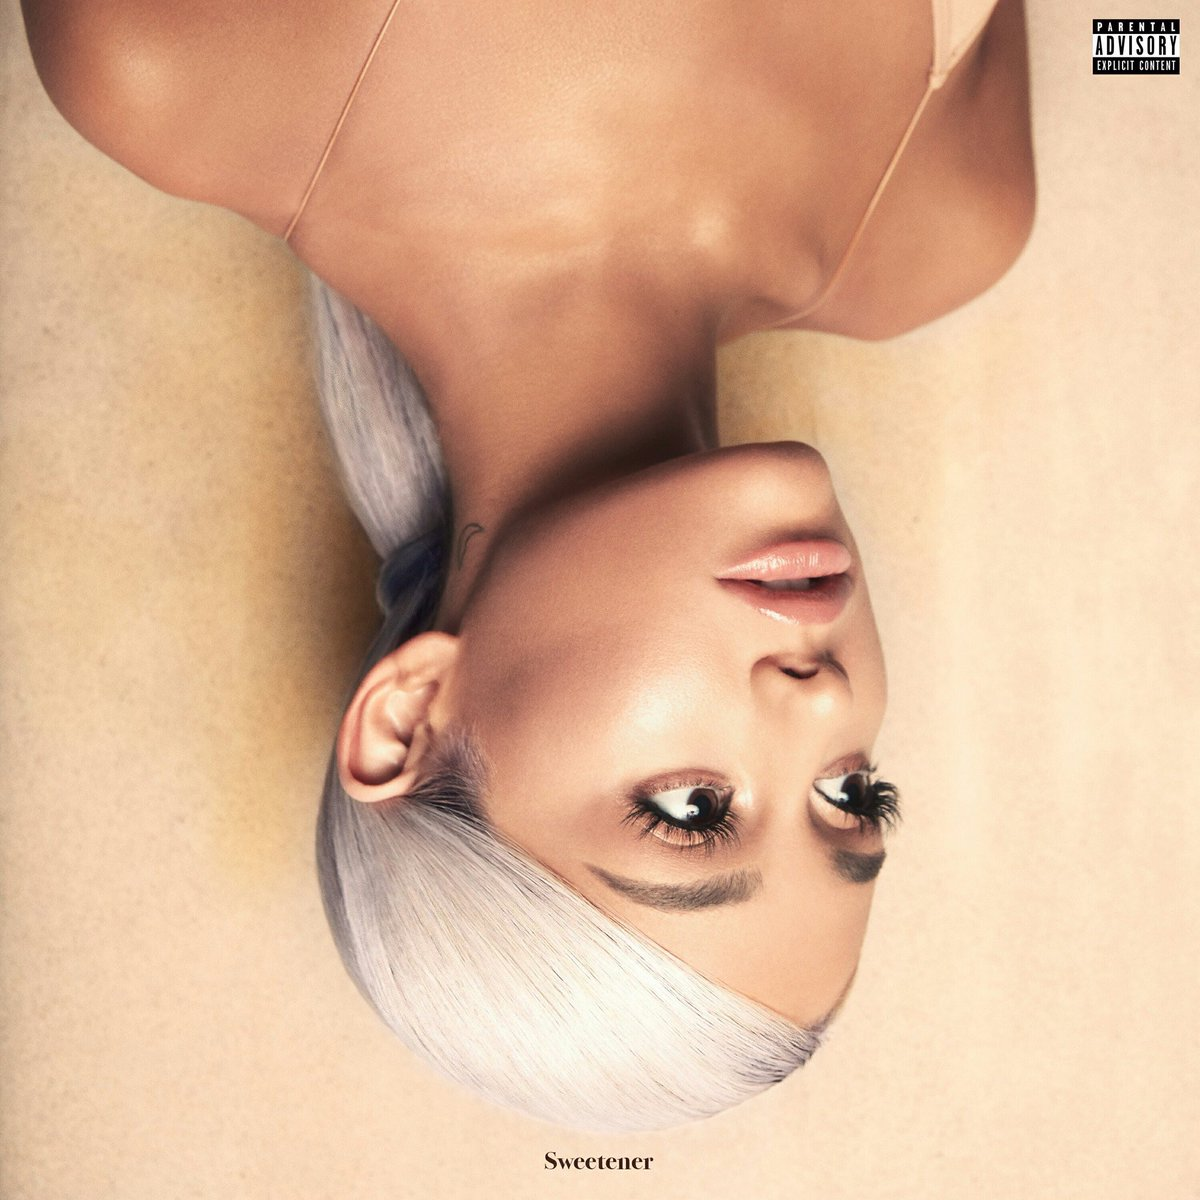 We're 4 hours away from the release of @ArianaGrande's highly-anticipated fourth studio album, #Sweetener. Based on song titles alone, which tracks are you most excited to hear? <br>http://pic.twitter.com/5vCLBefBDt